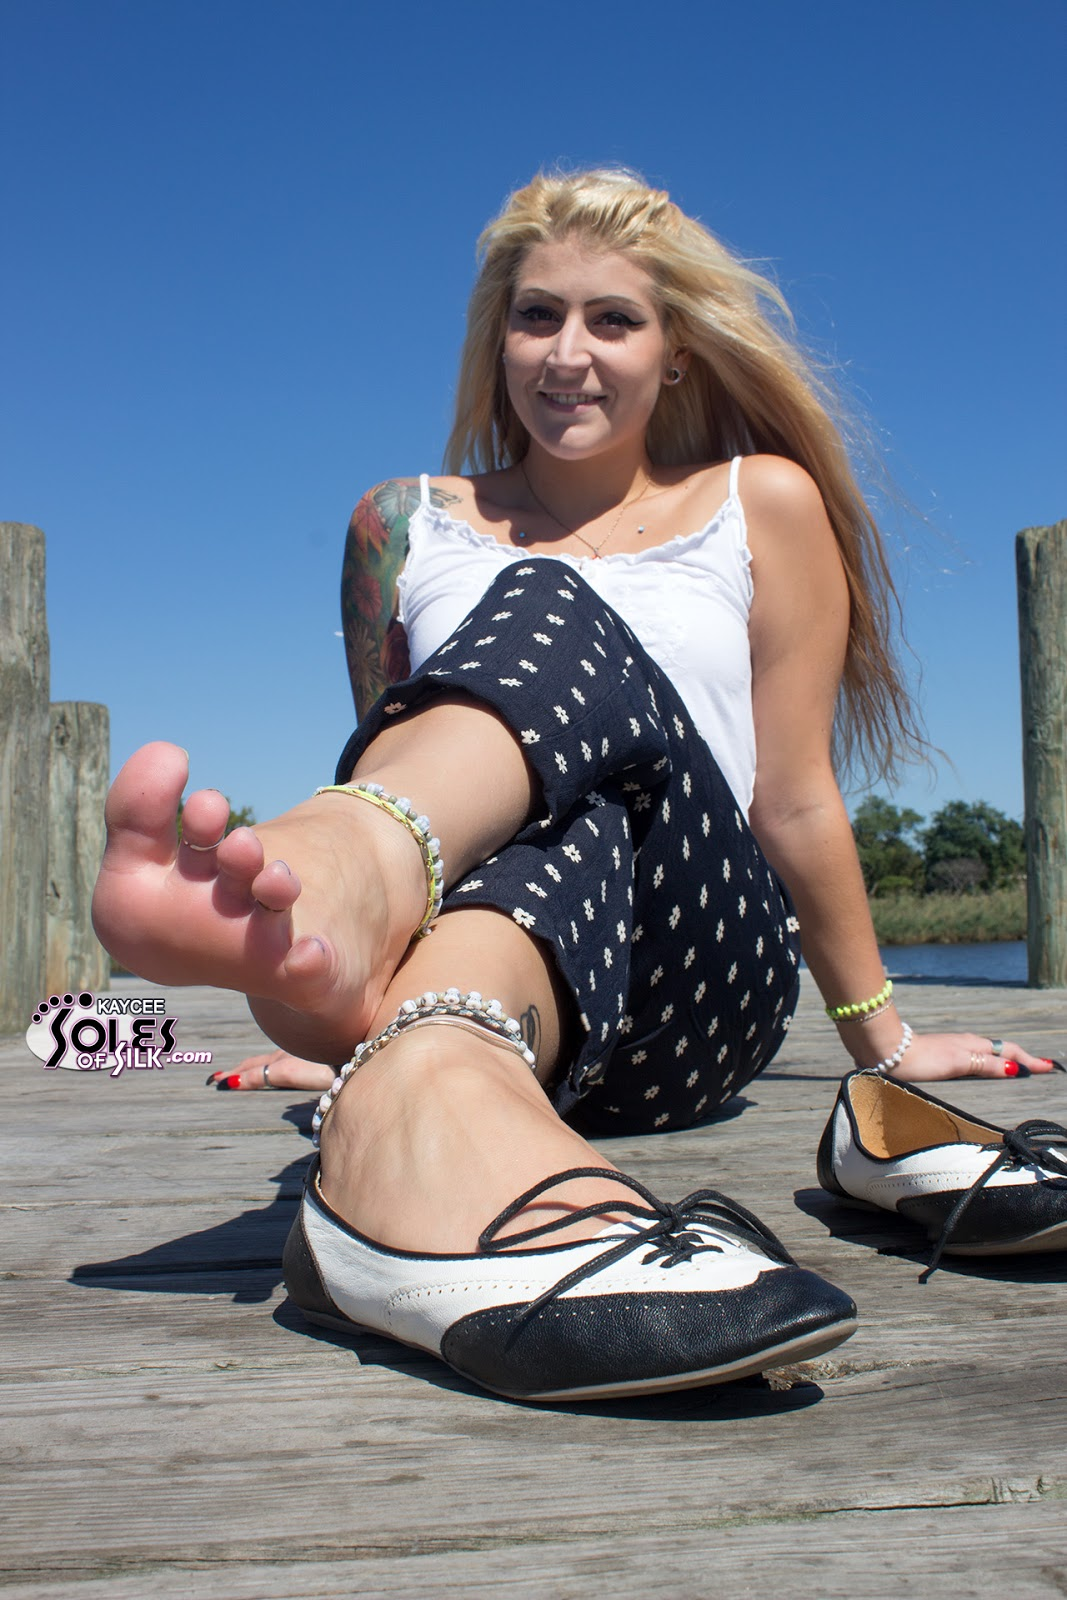 Soles Of Silk Blog Soles Of Silk Update - April 26, 2017-6647